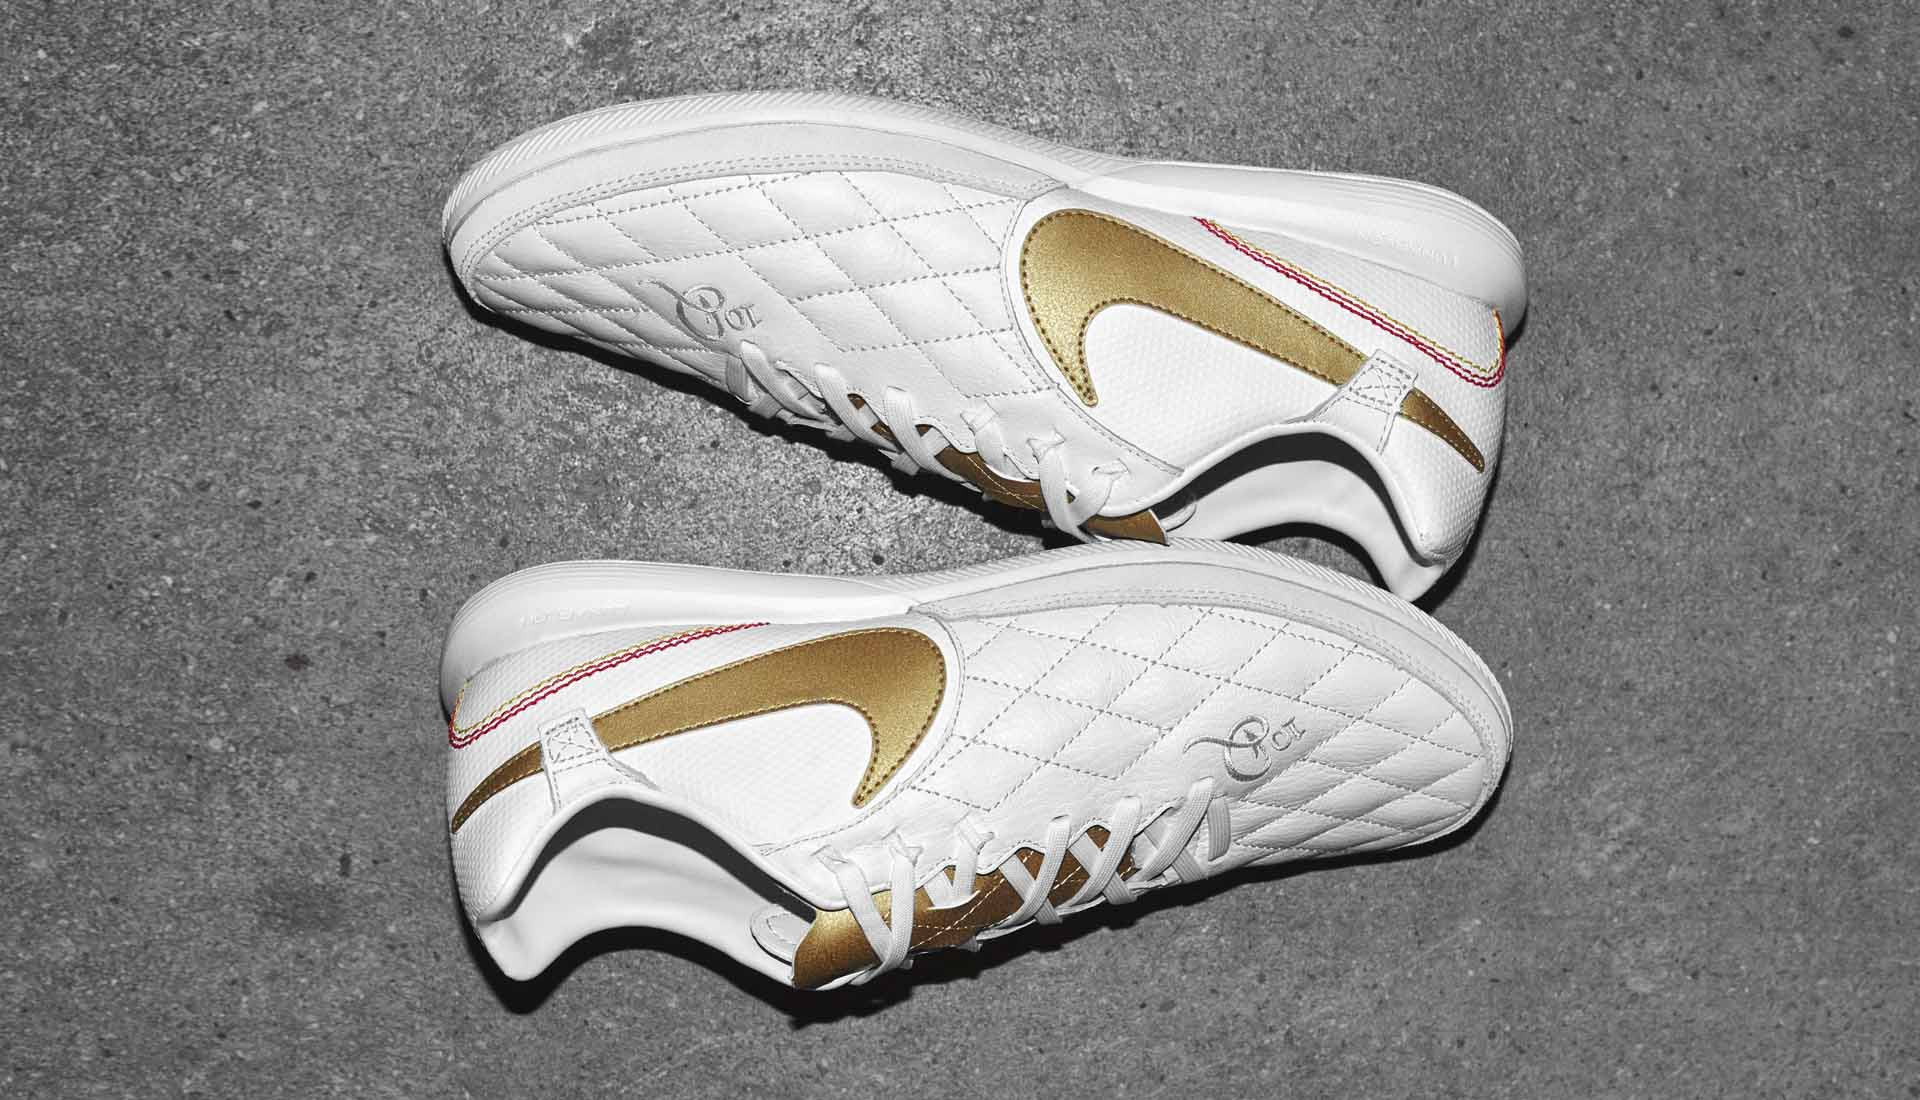 chaussures-football-Nike-Tiempo-X-10R-Barcelone-img4